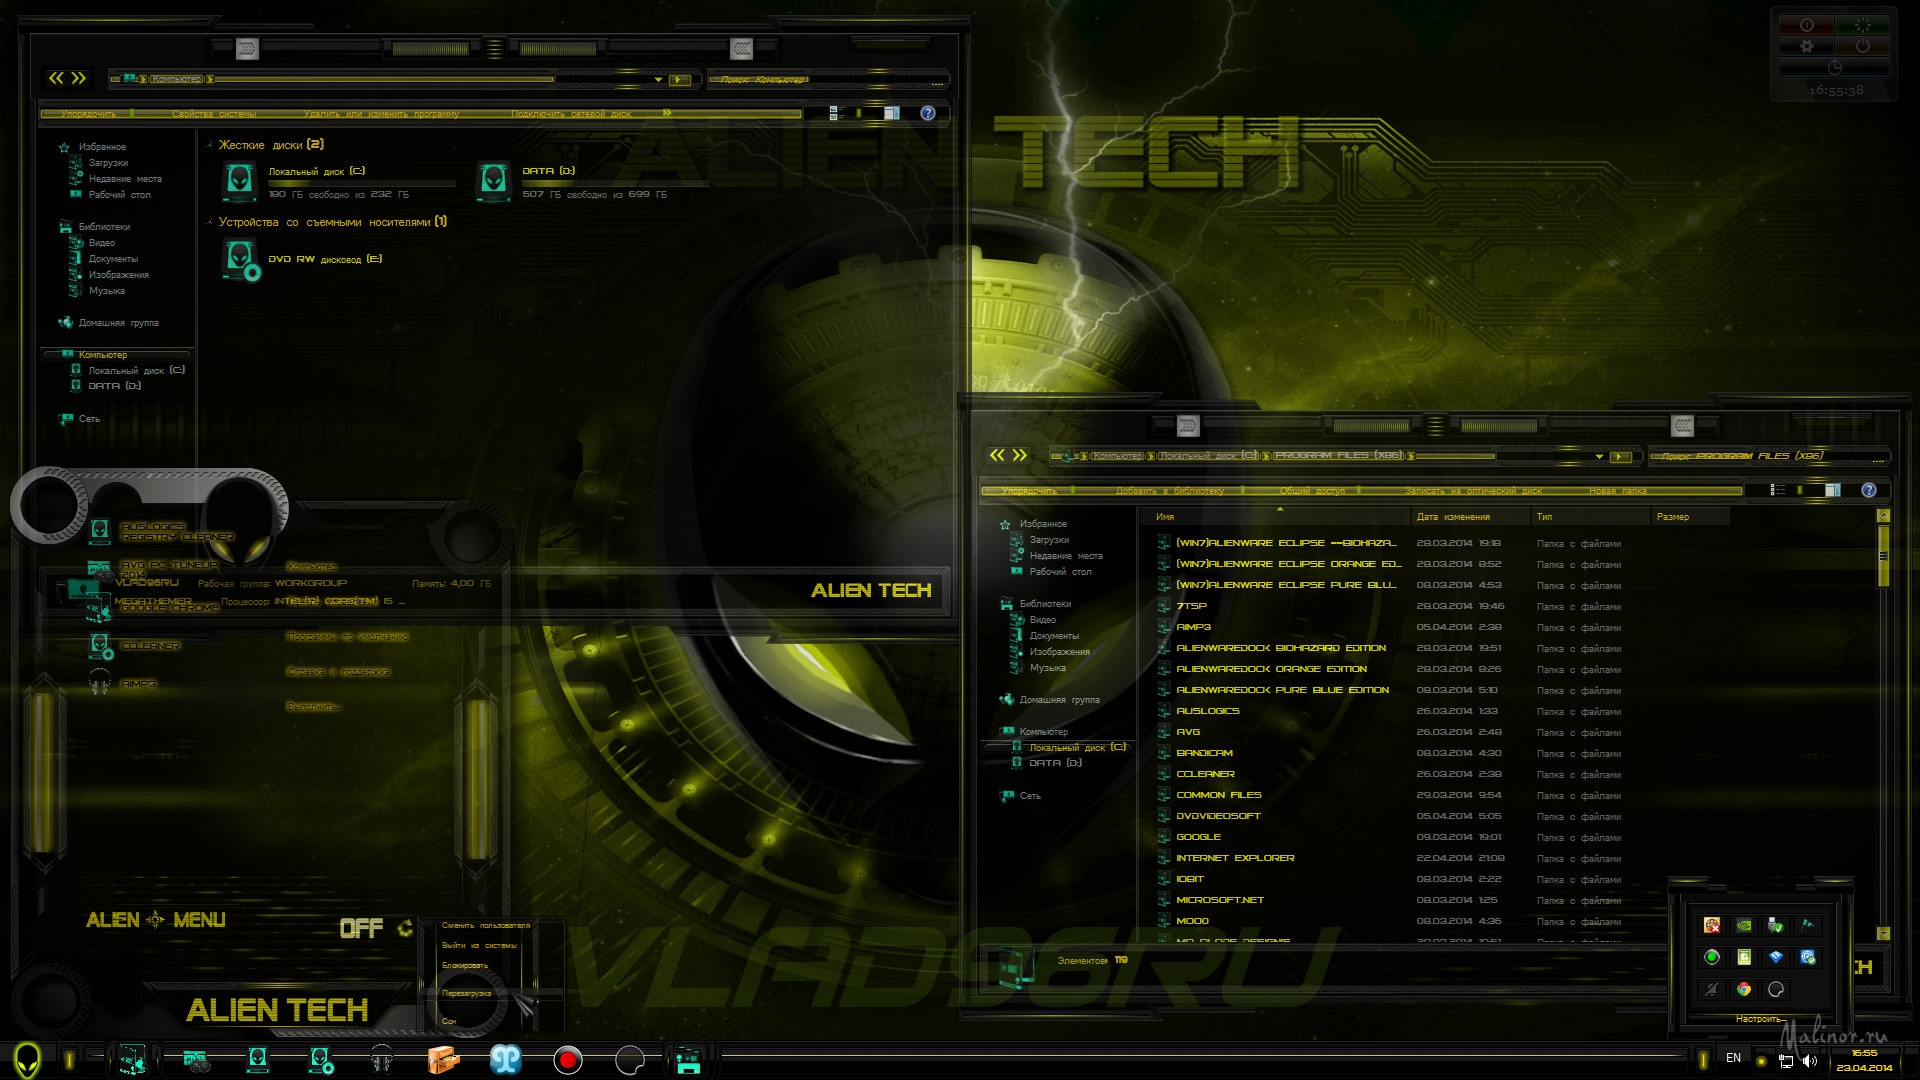 Alien Tech Yellow - Тема для Windows 7